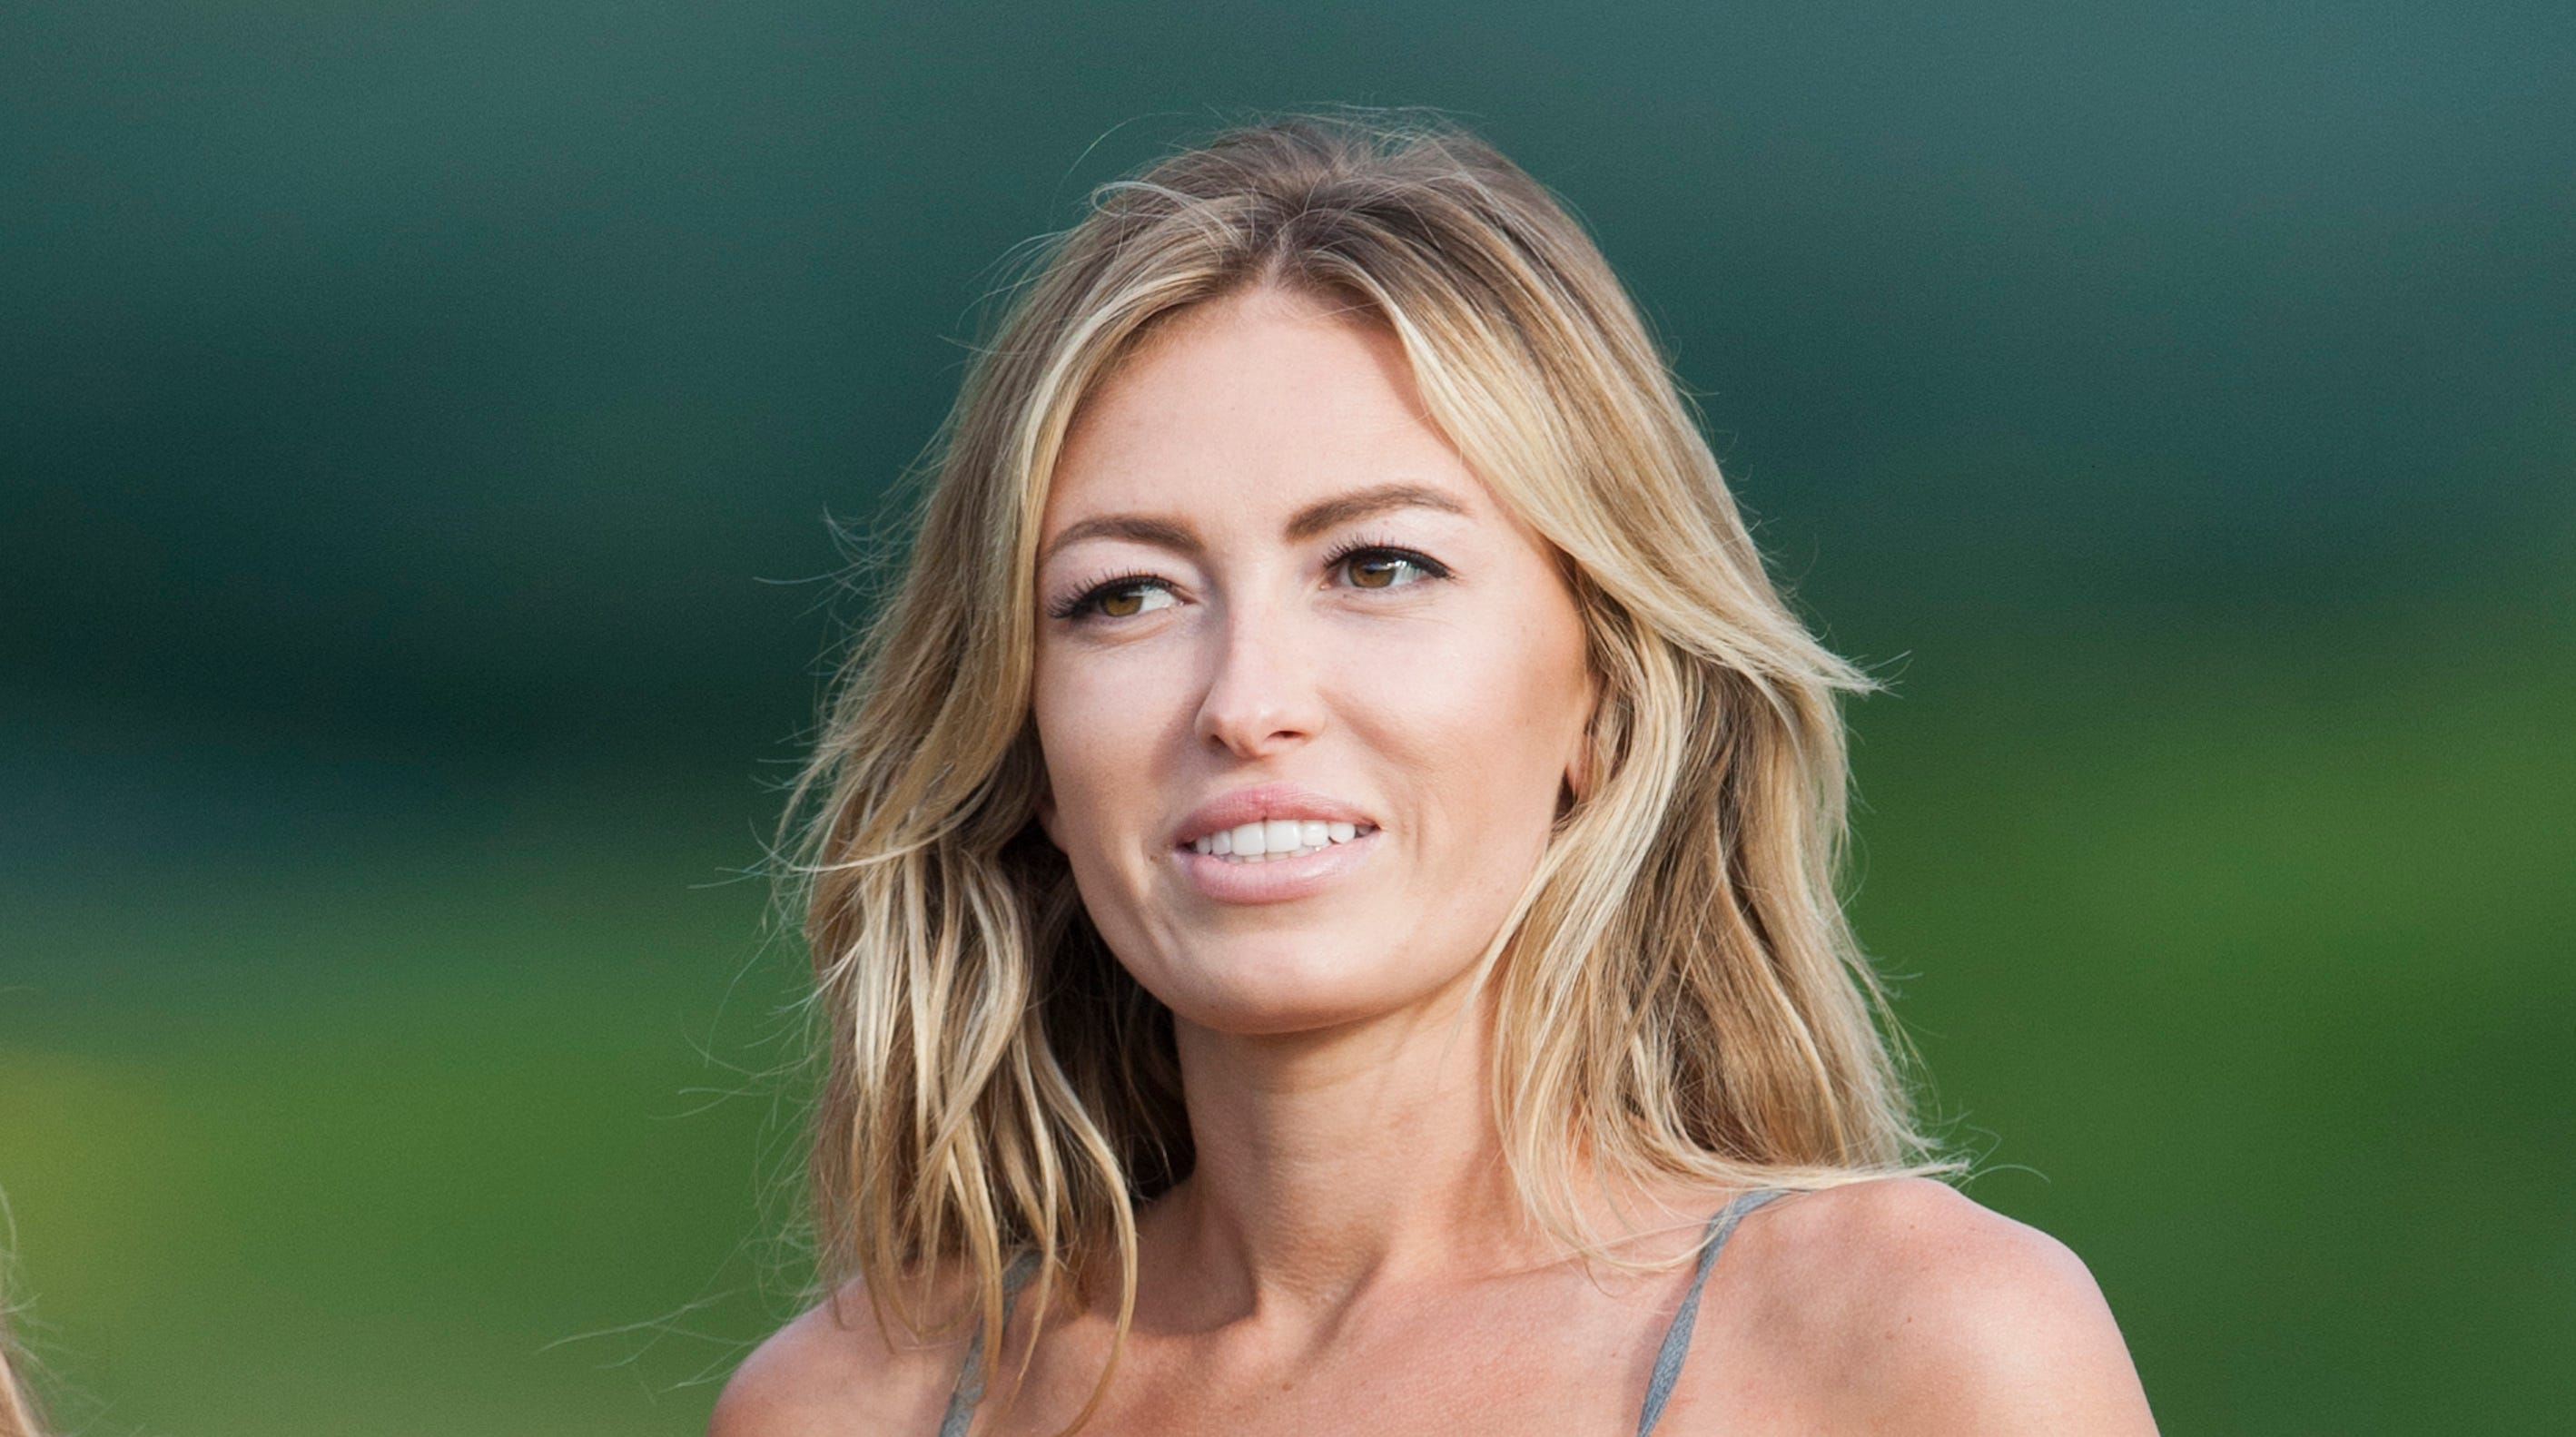 Paulina Gretzky is seen near the 18th fairway during the first round of the Tournament of Champions golf tournament, Friday, Jan. 3, 2014, in Kapalua, Hawaii.